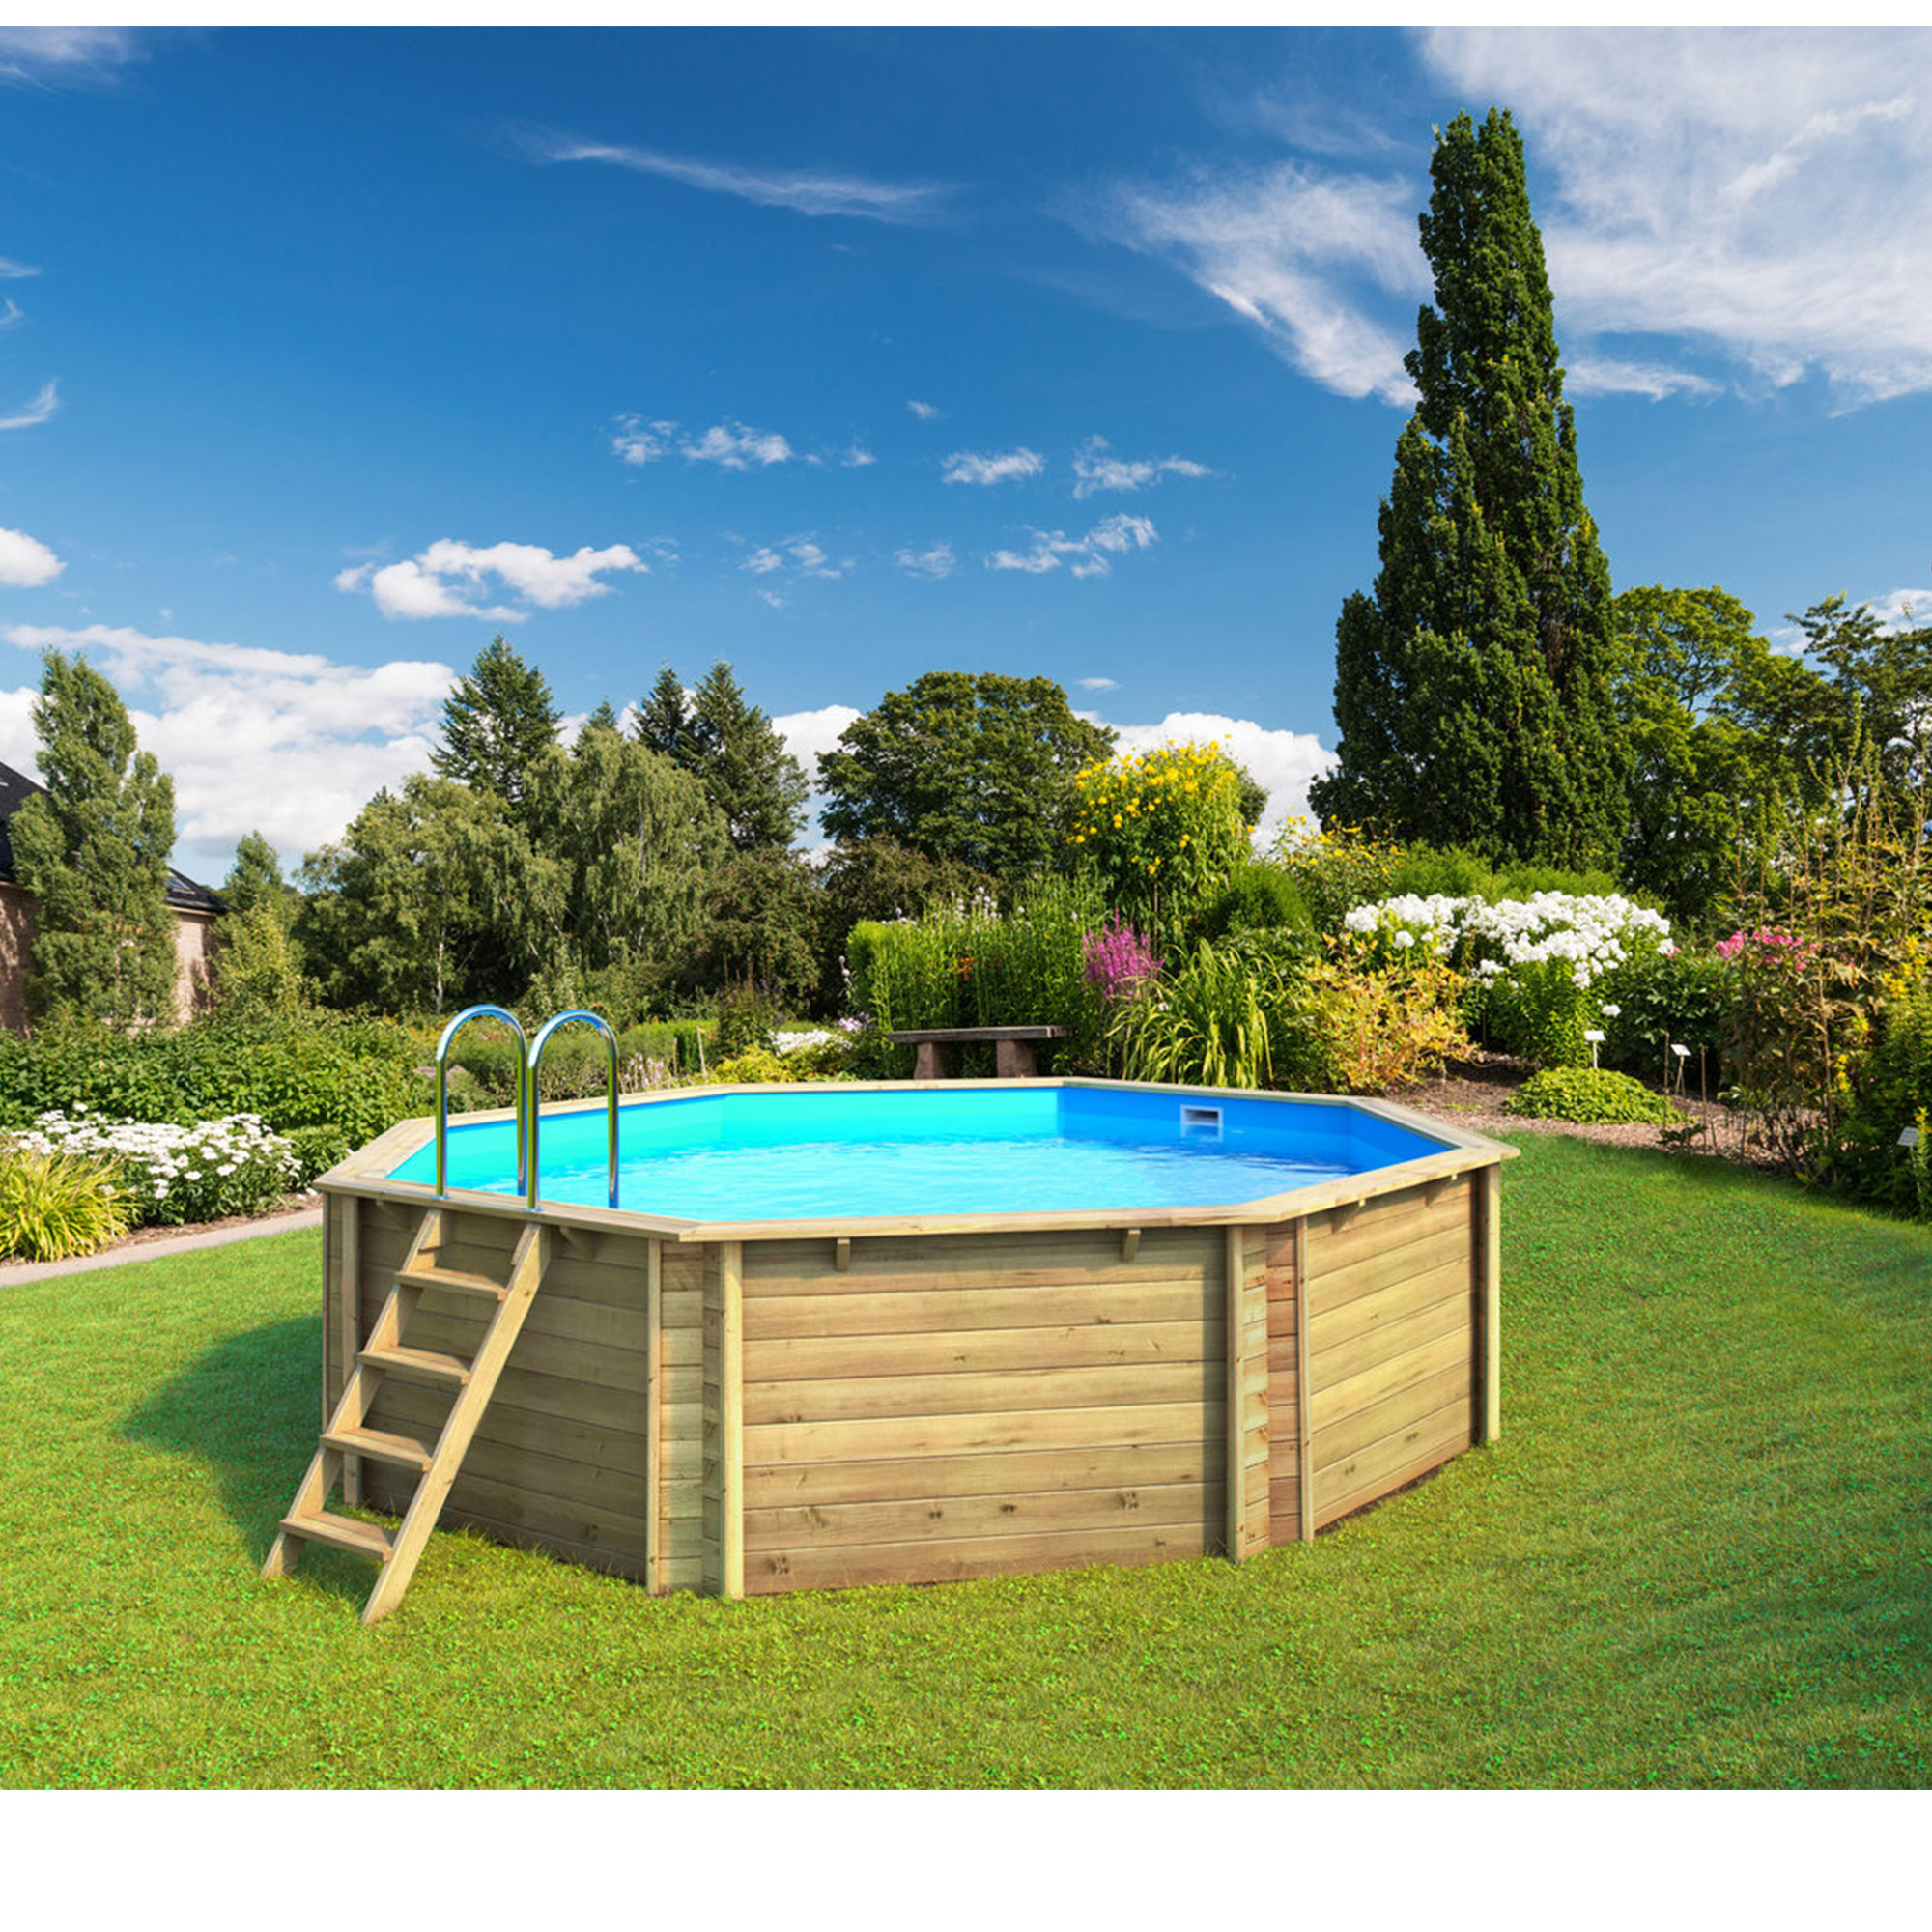 Piscine bois octogonale exclusivement hors sol tropic for Piscine hors sol bois octogonale